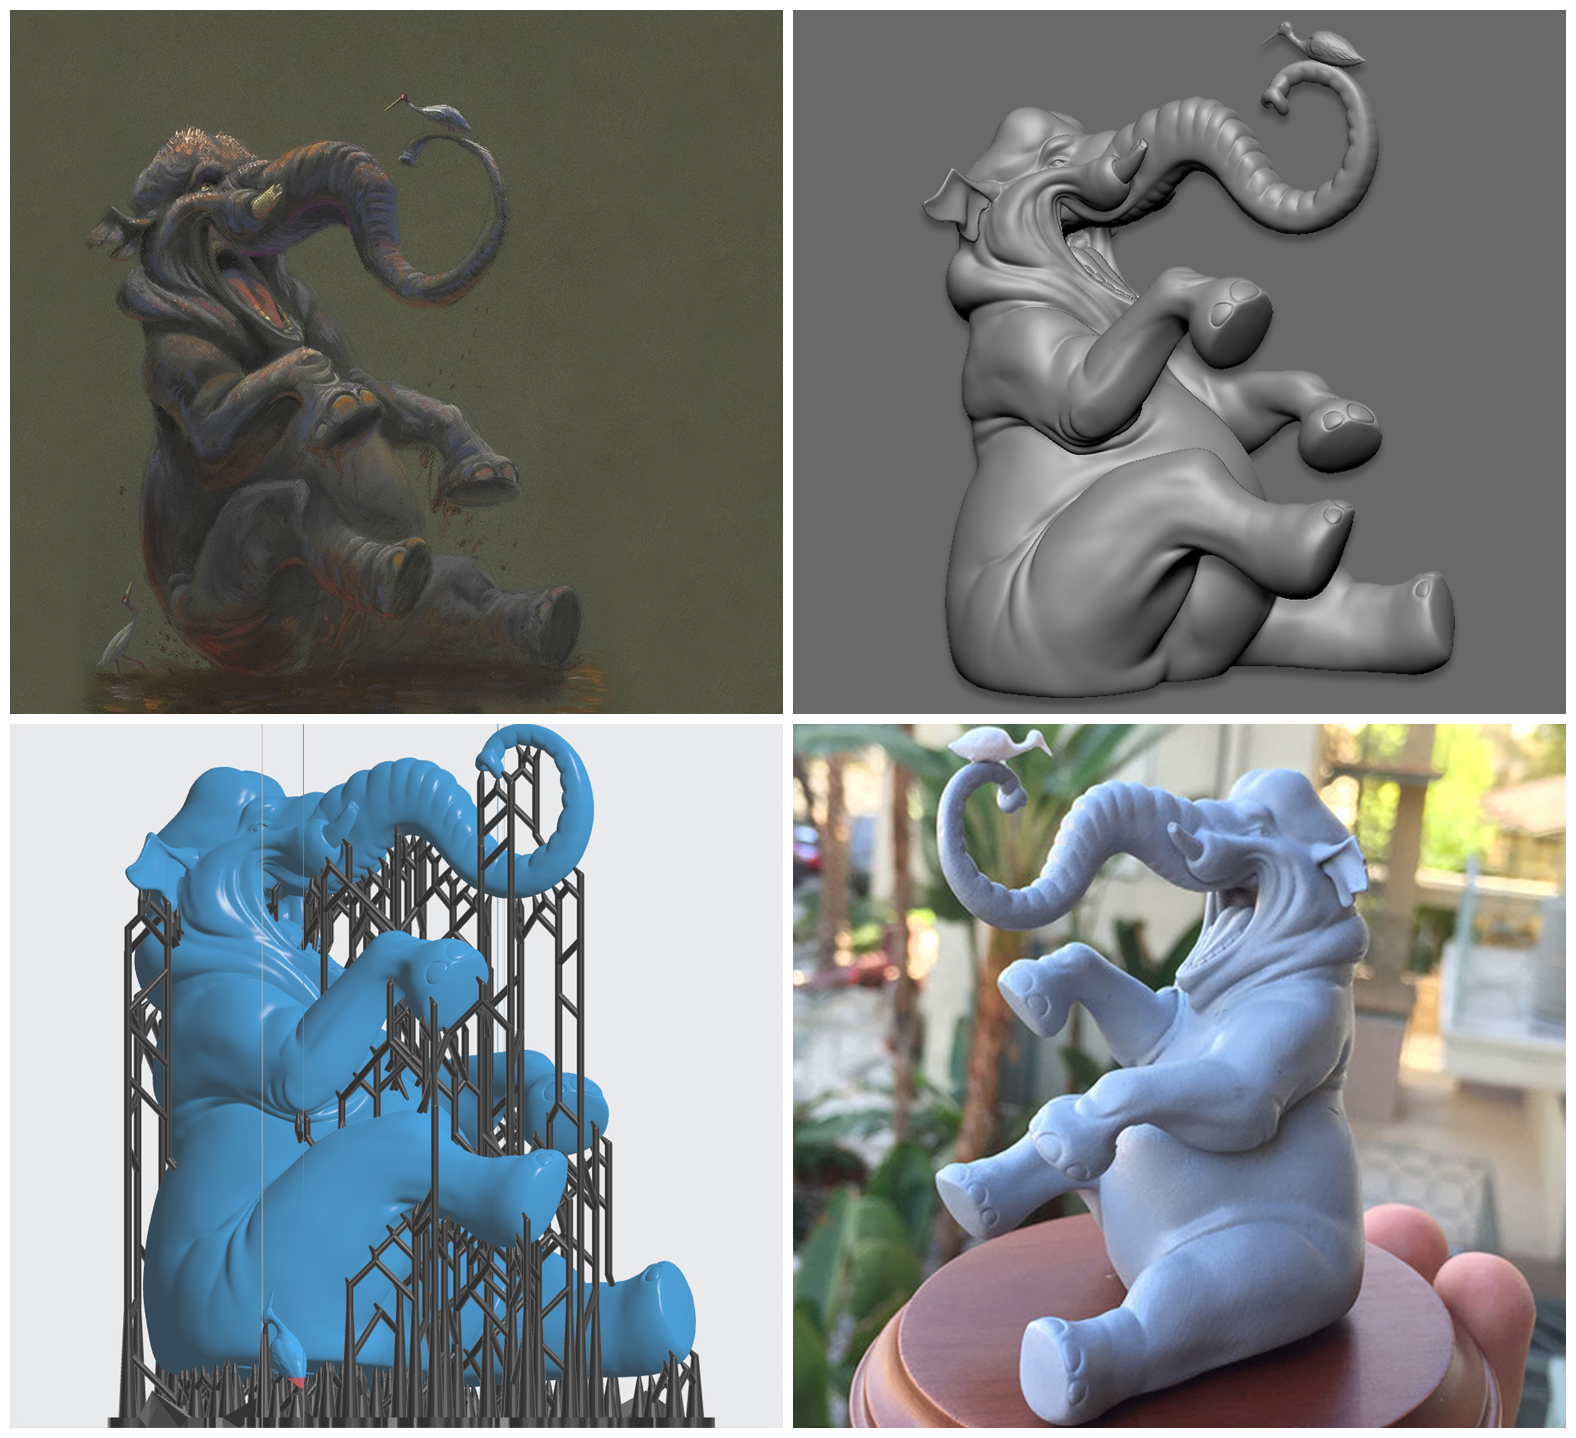 design process for modeling and 3d printing an elephant